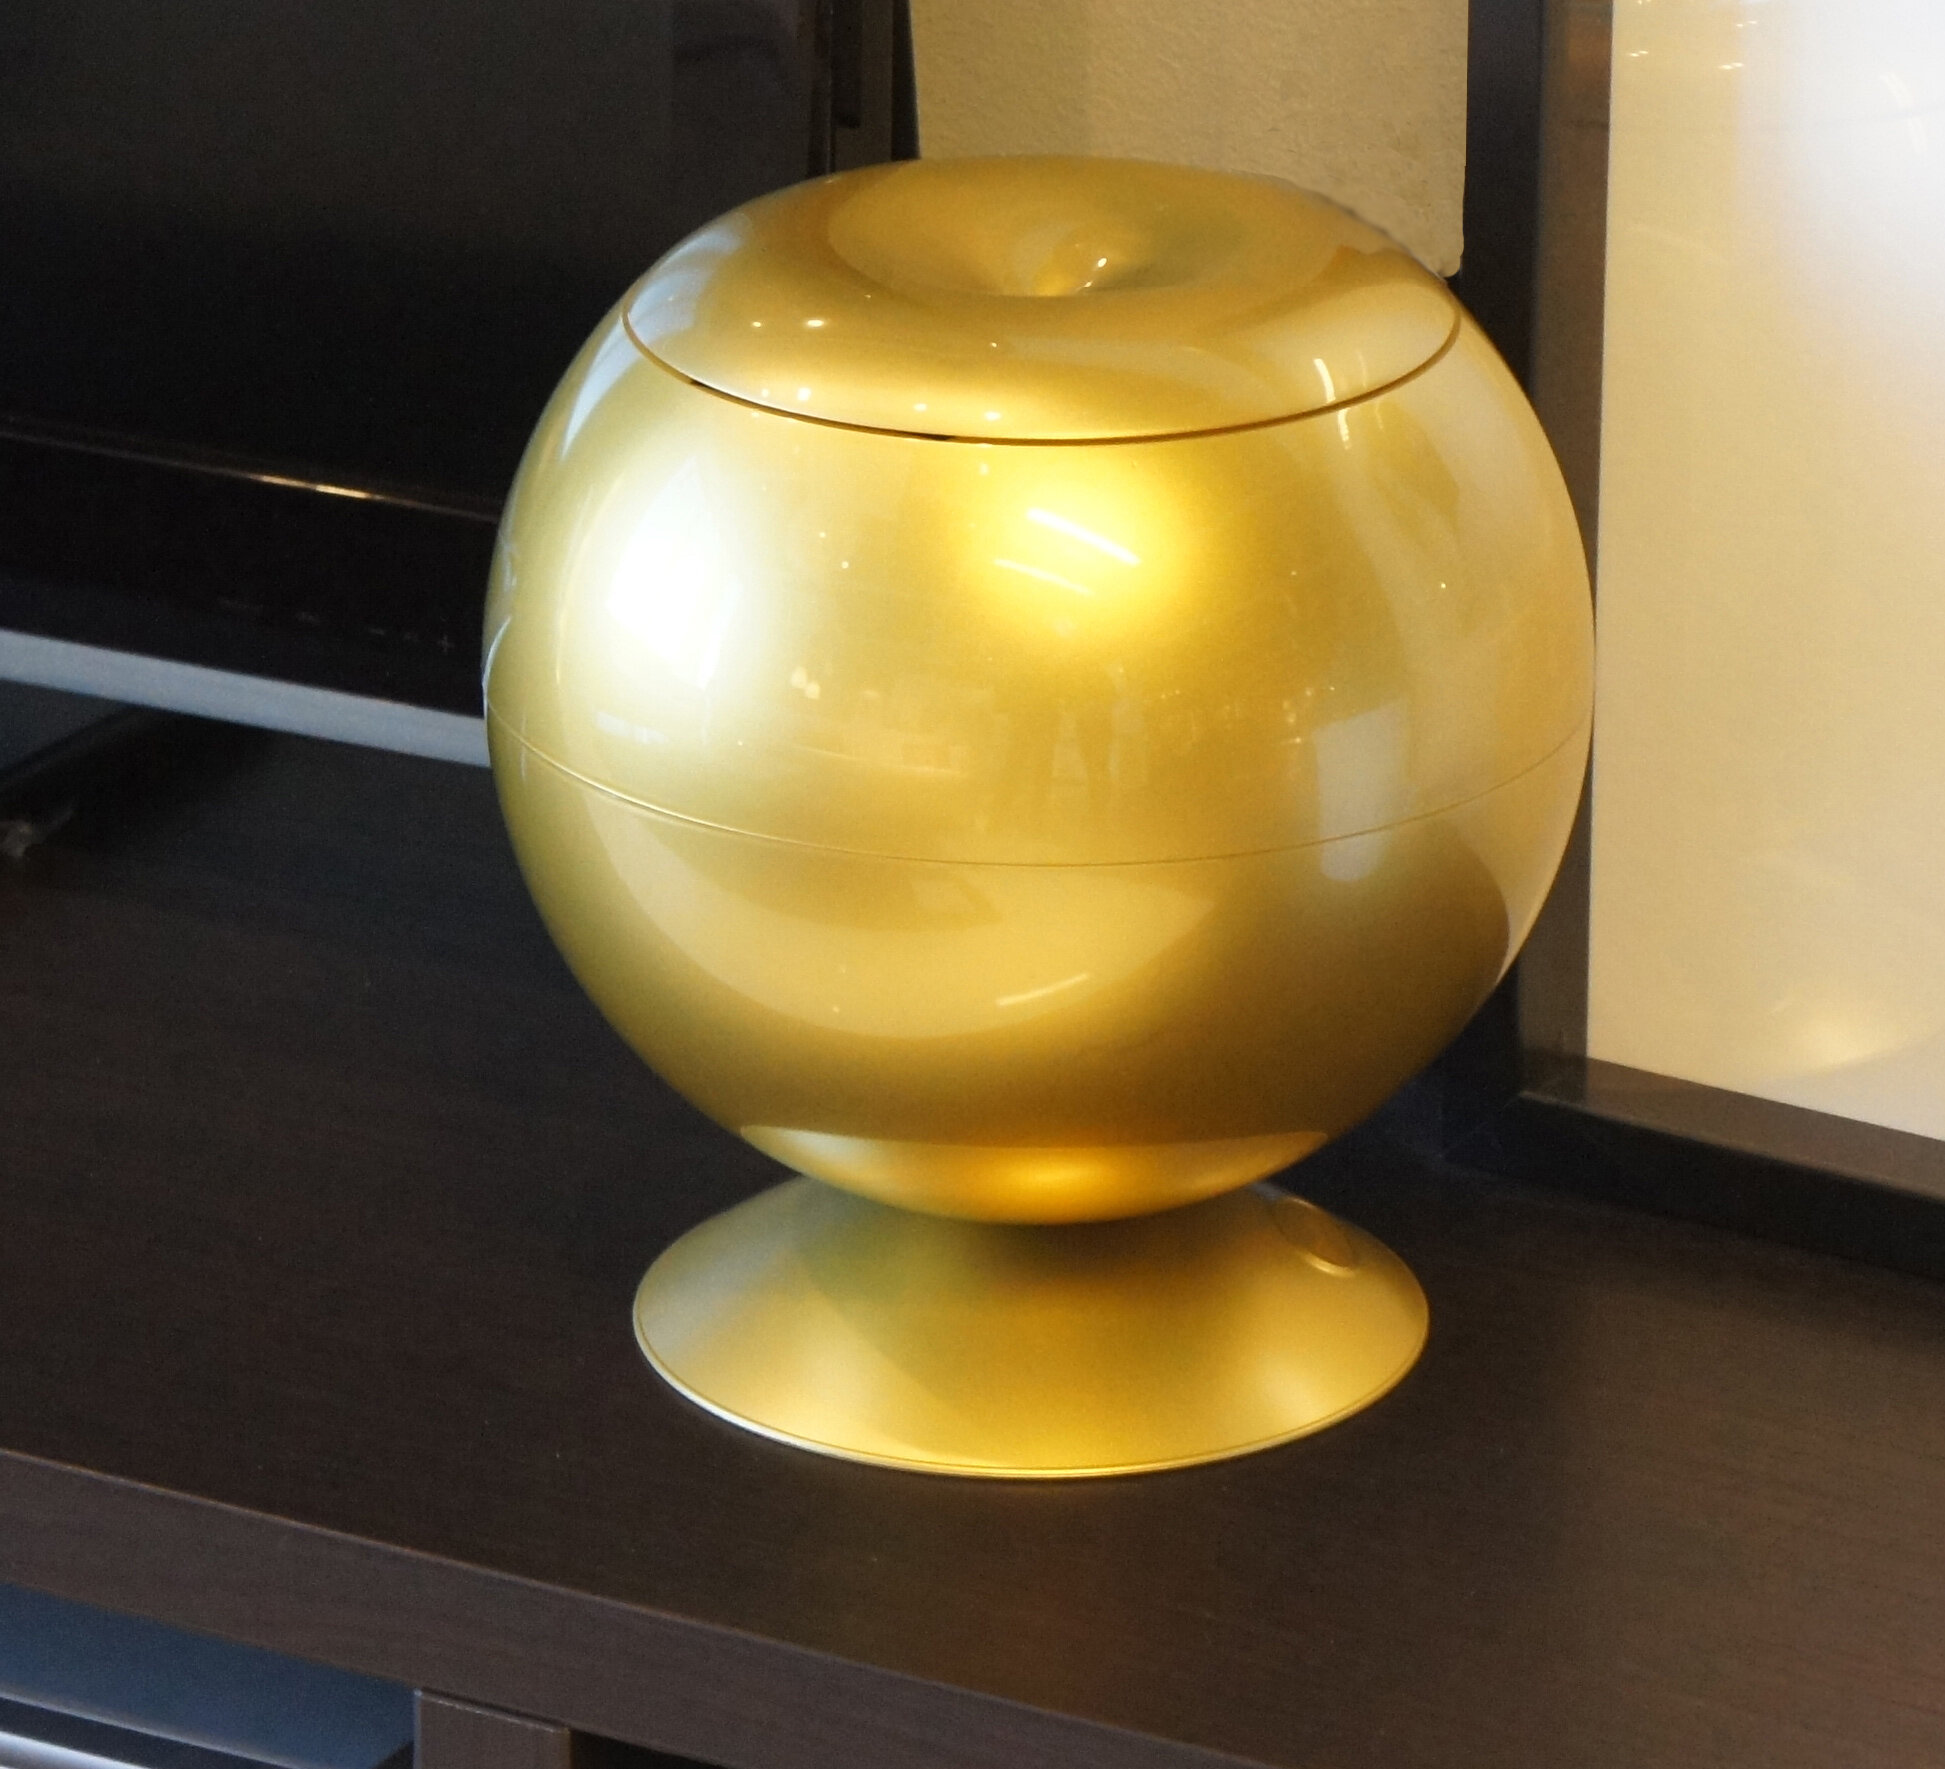 Itouchless Decorative Accent 360° Sensor Apple With Hidden Storage Container  | Wayfair